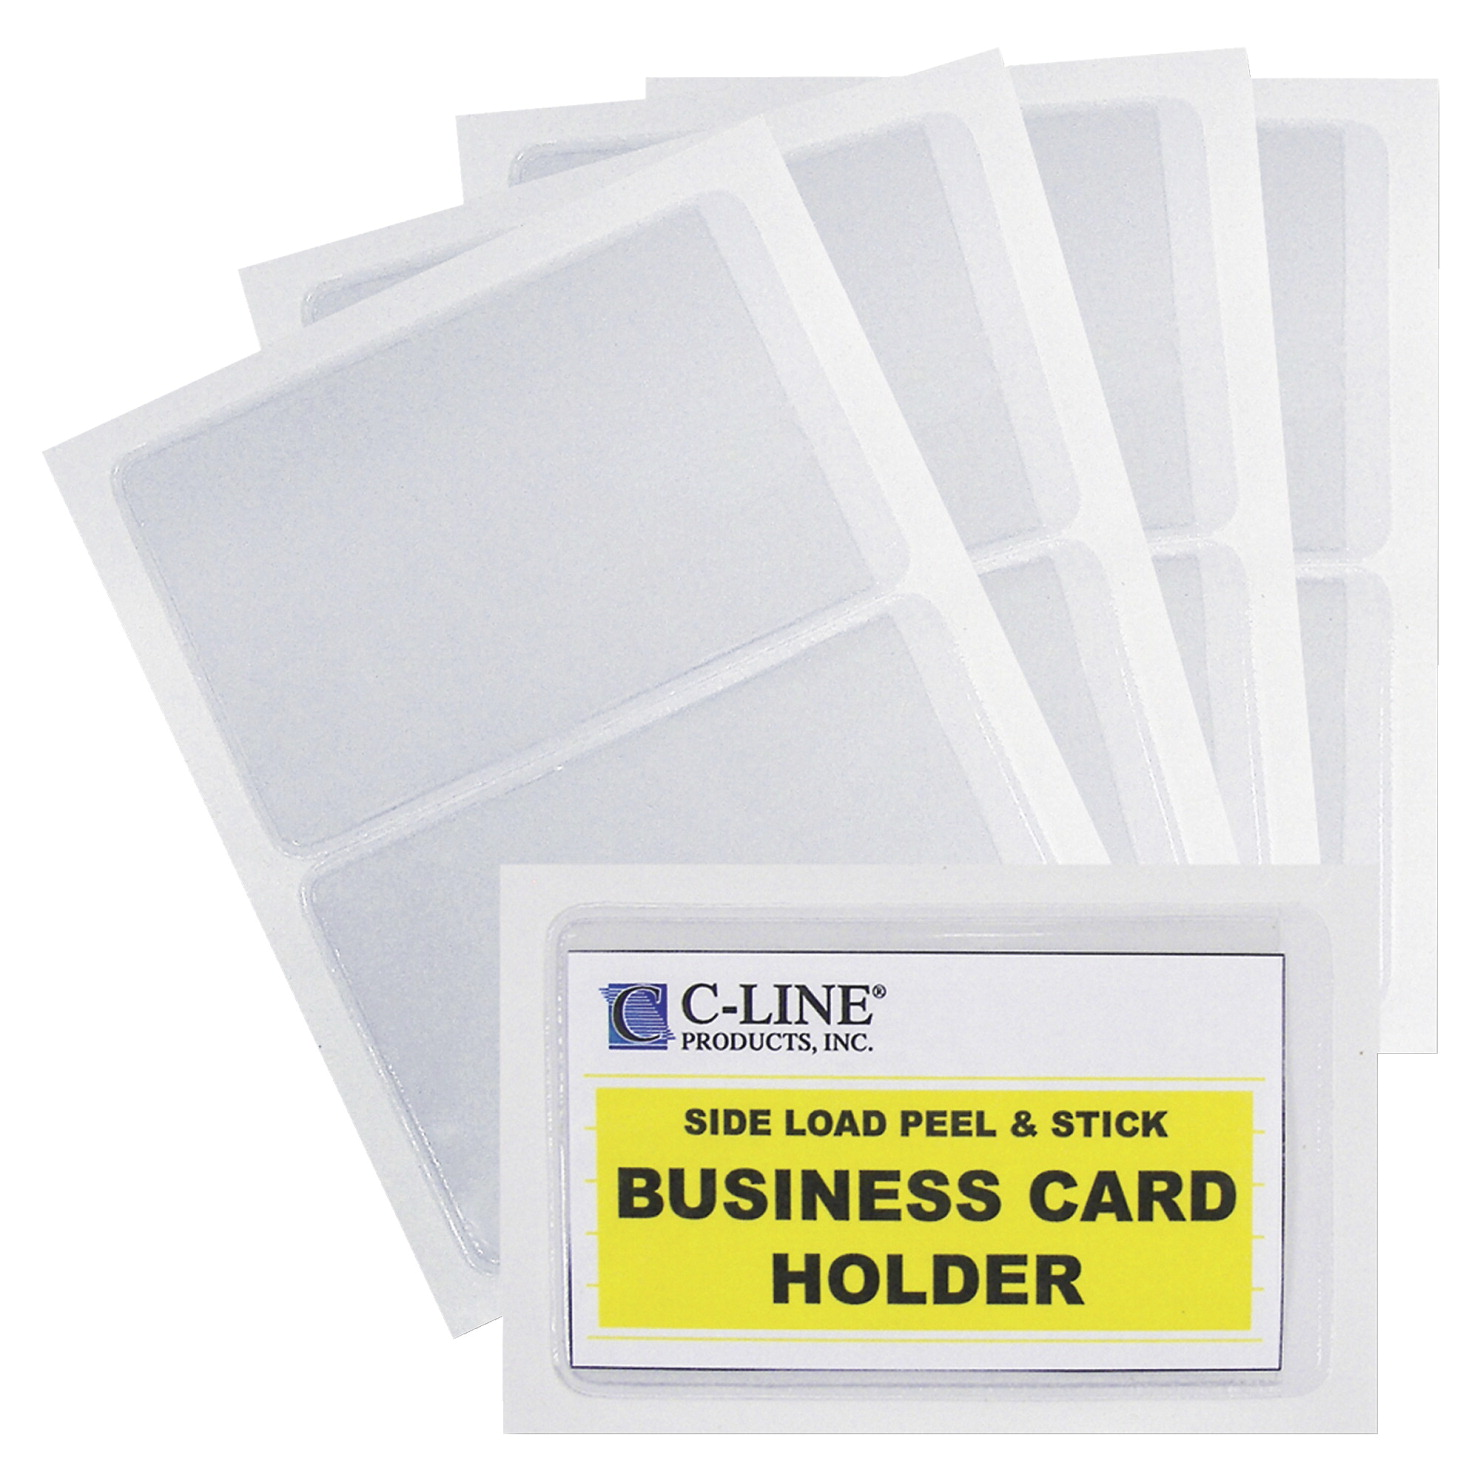 Business Card Holder - SOAR Life Products